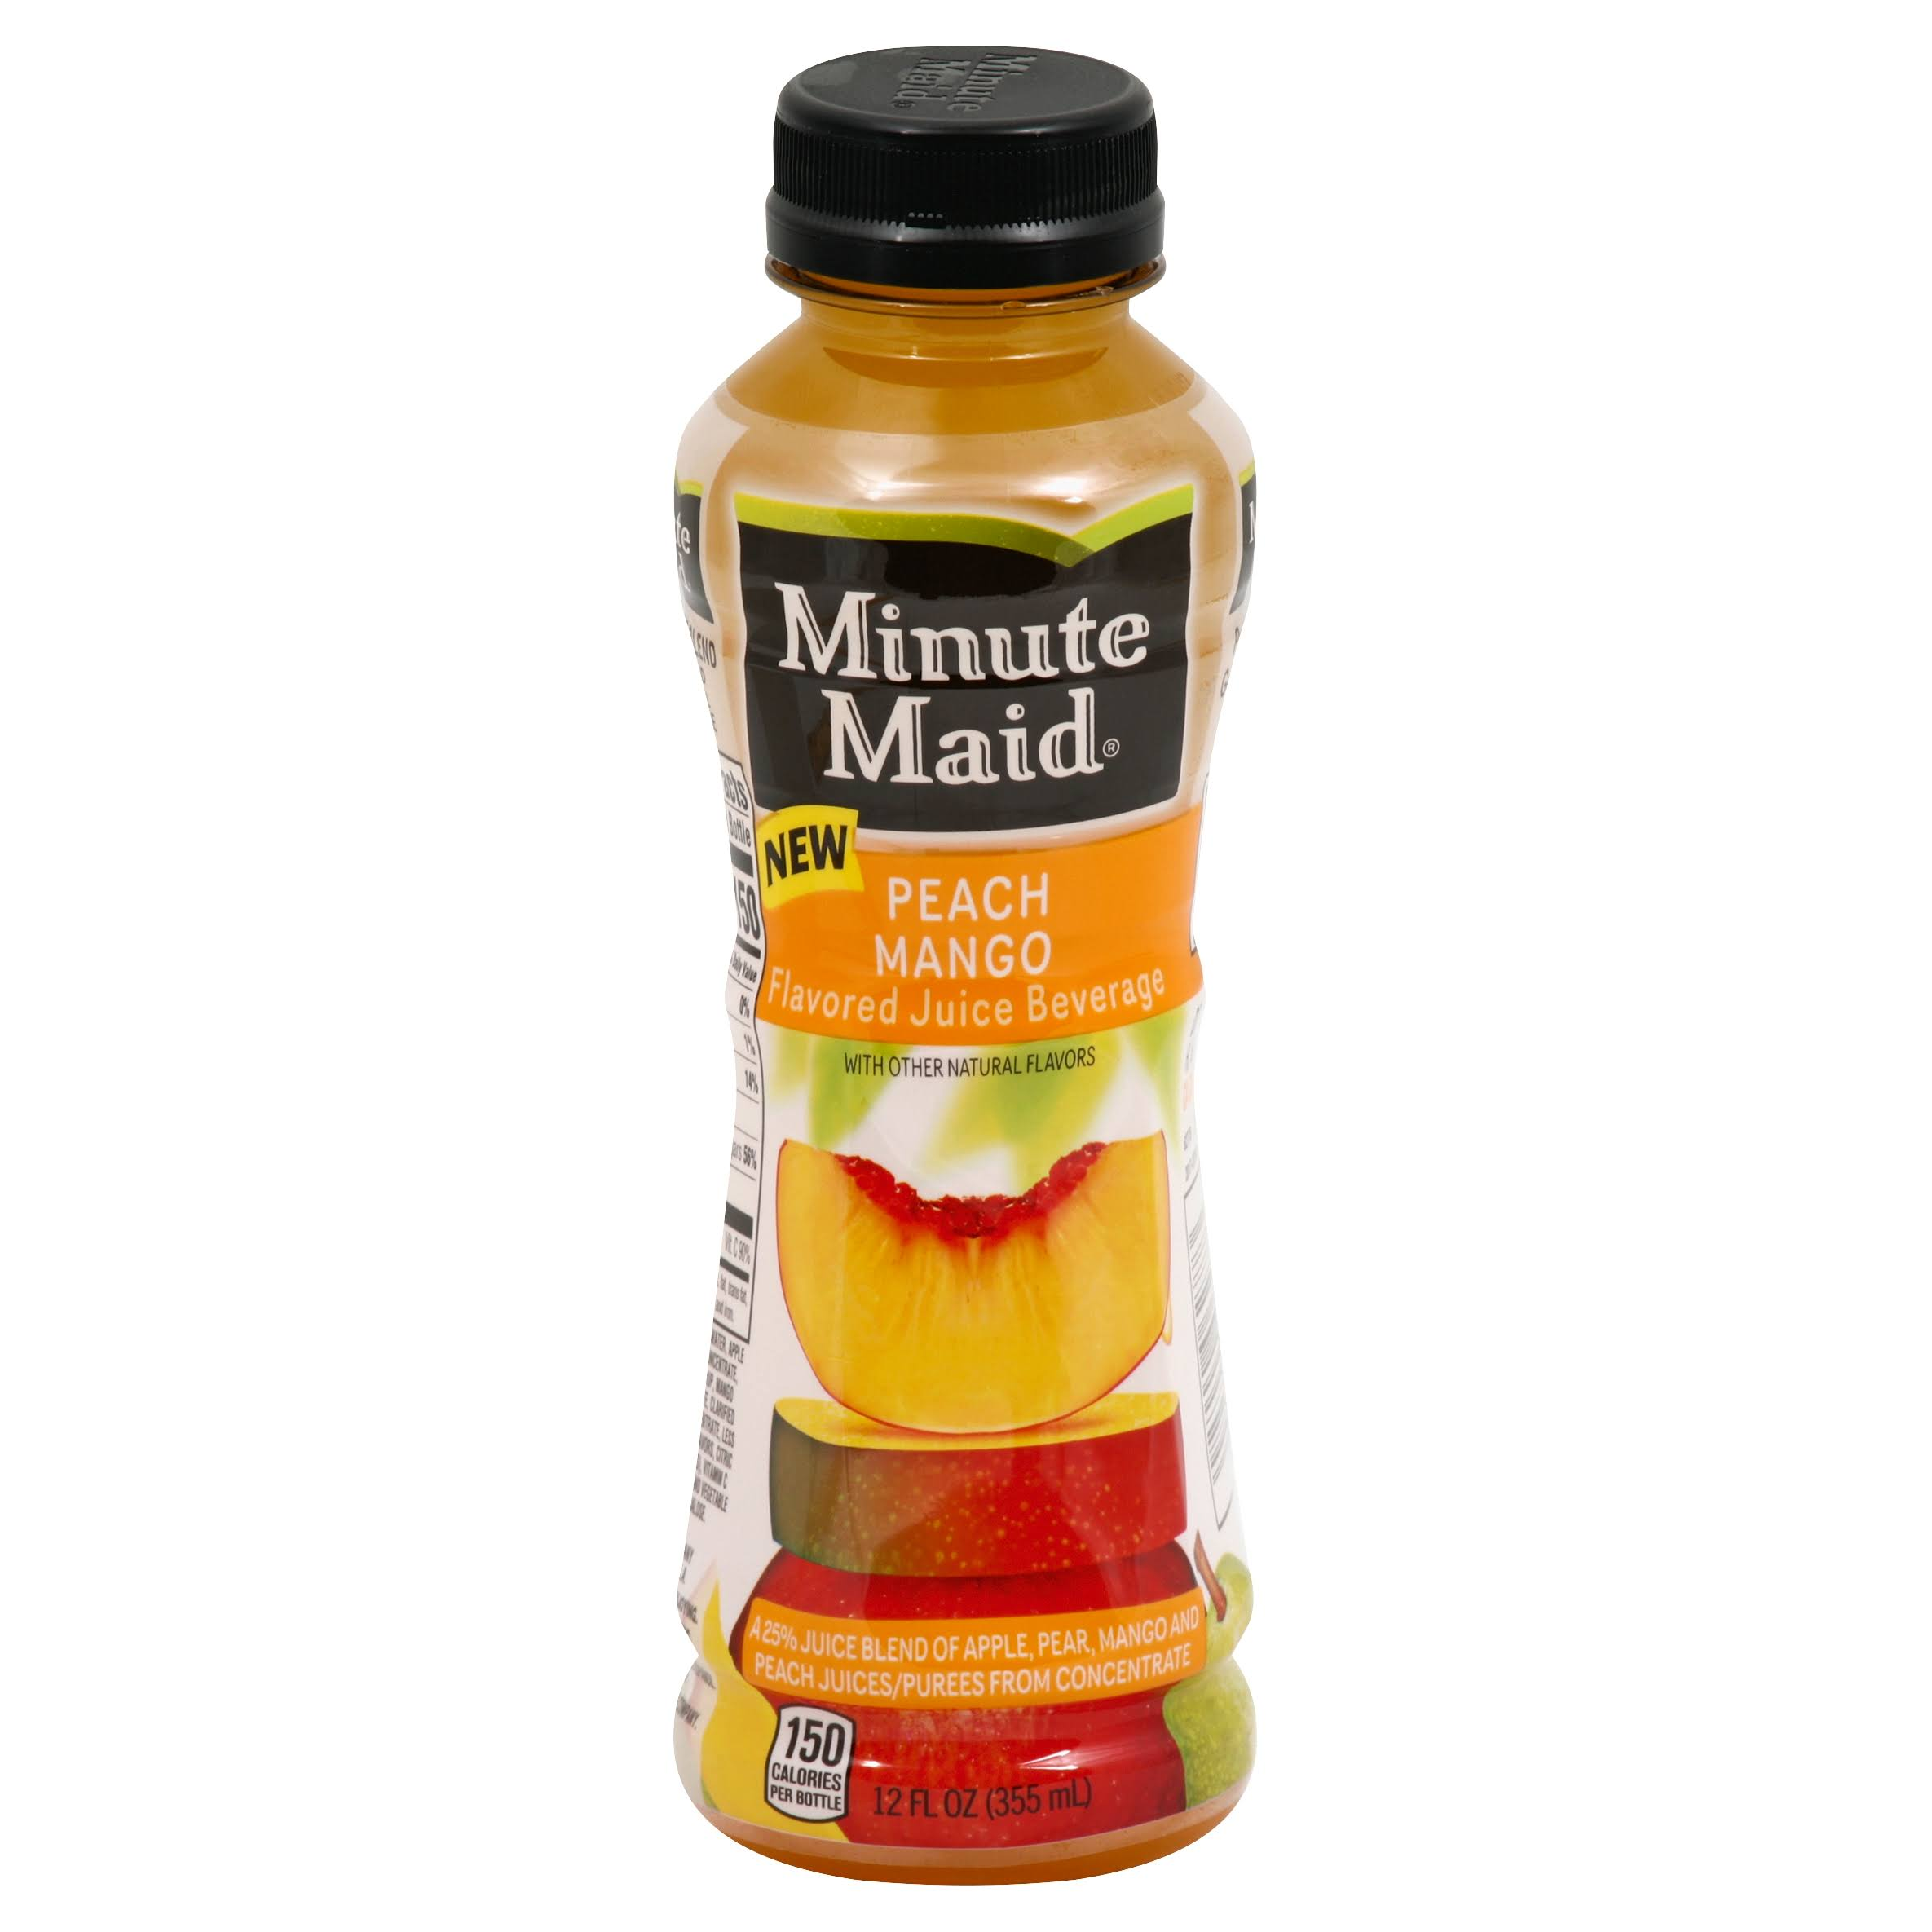 Minute Maid Juice Beverage, Flavored, Peach Mango - 12 fl oz